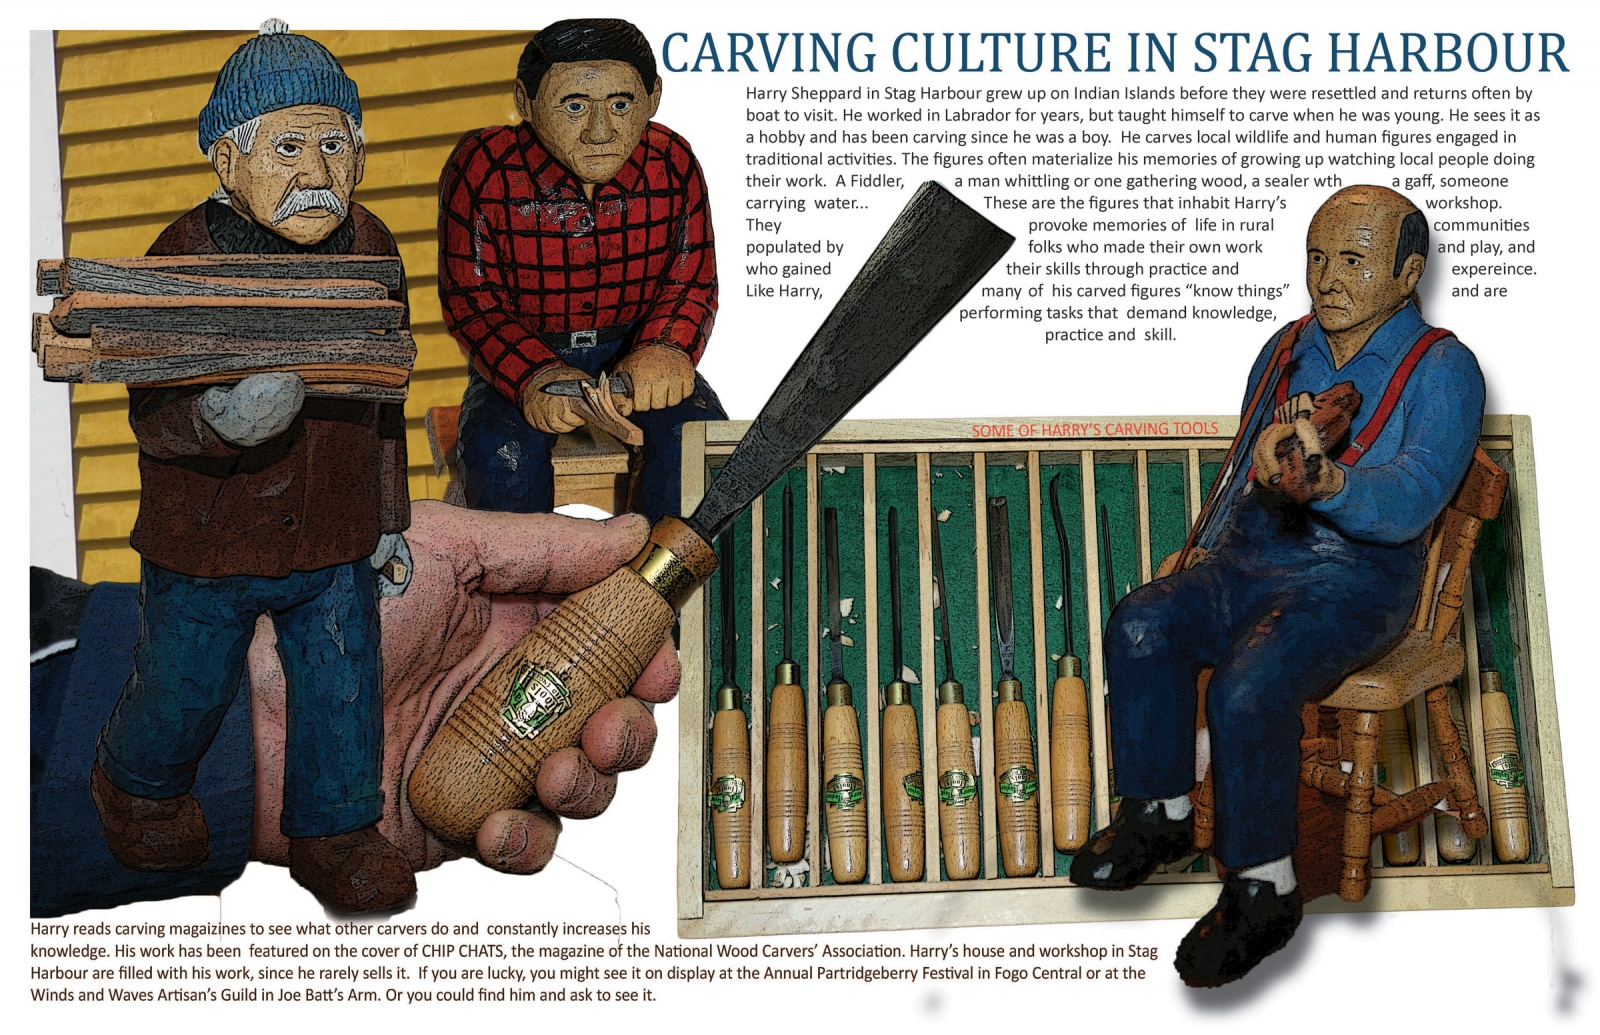 Carving Culture in Stag Harbour